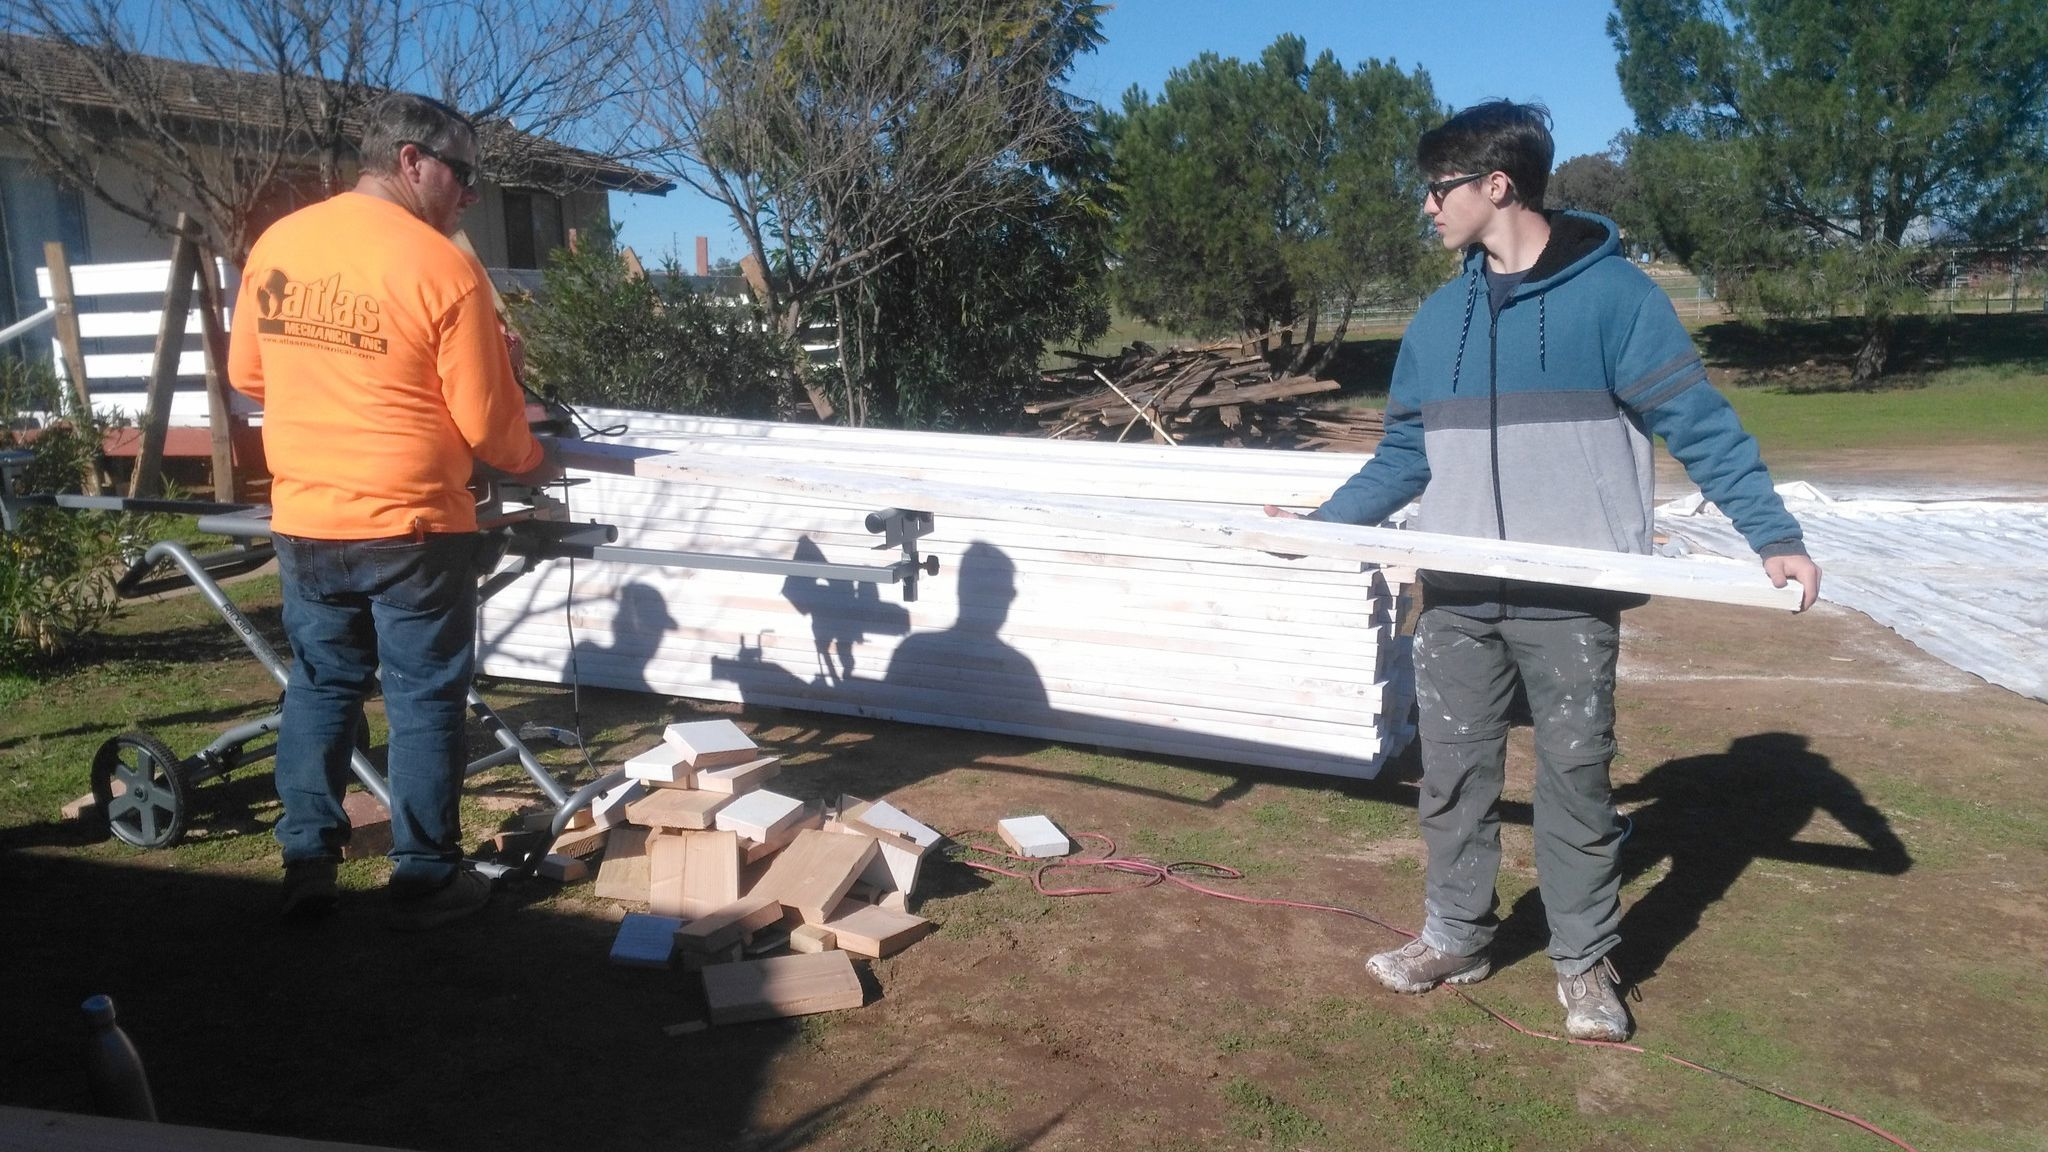 James White, right, works with his father, Robert White, on cutting boards for a new deck at Michael's House.